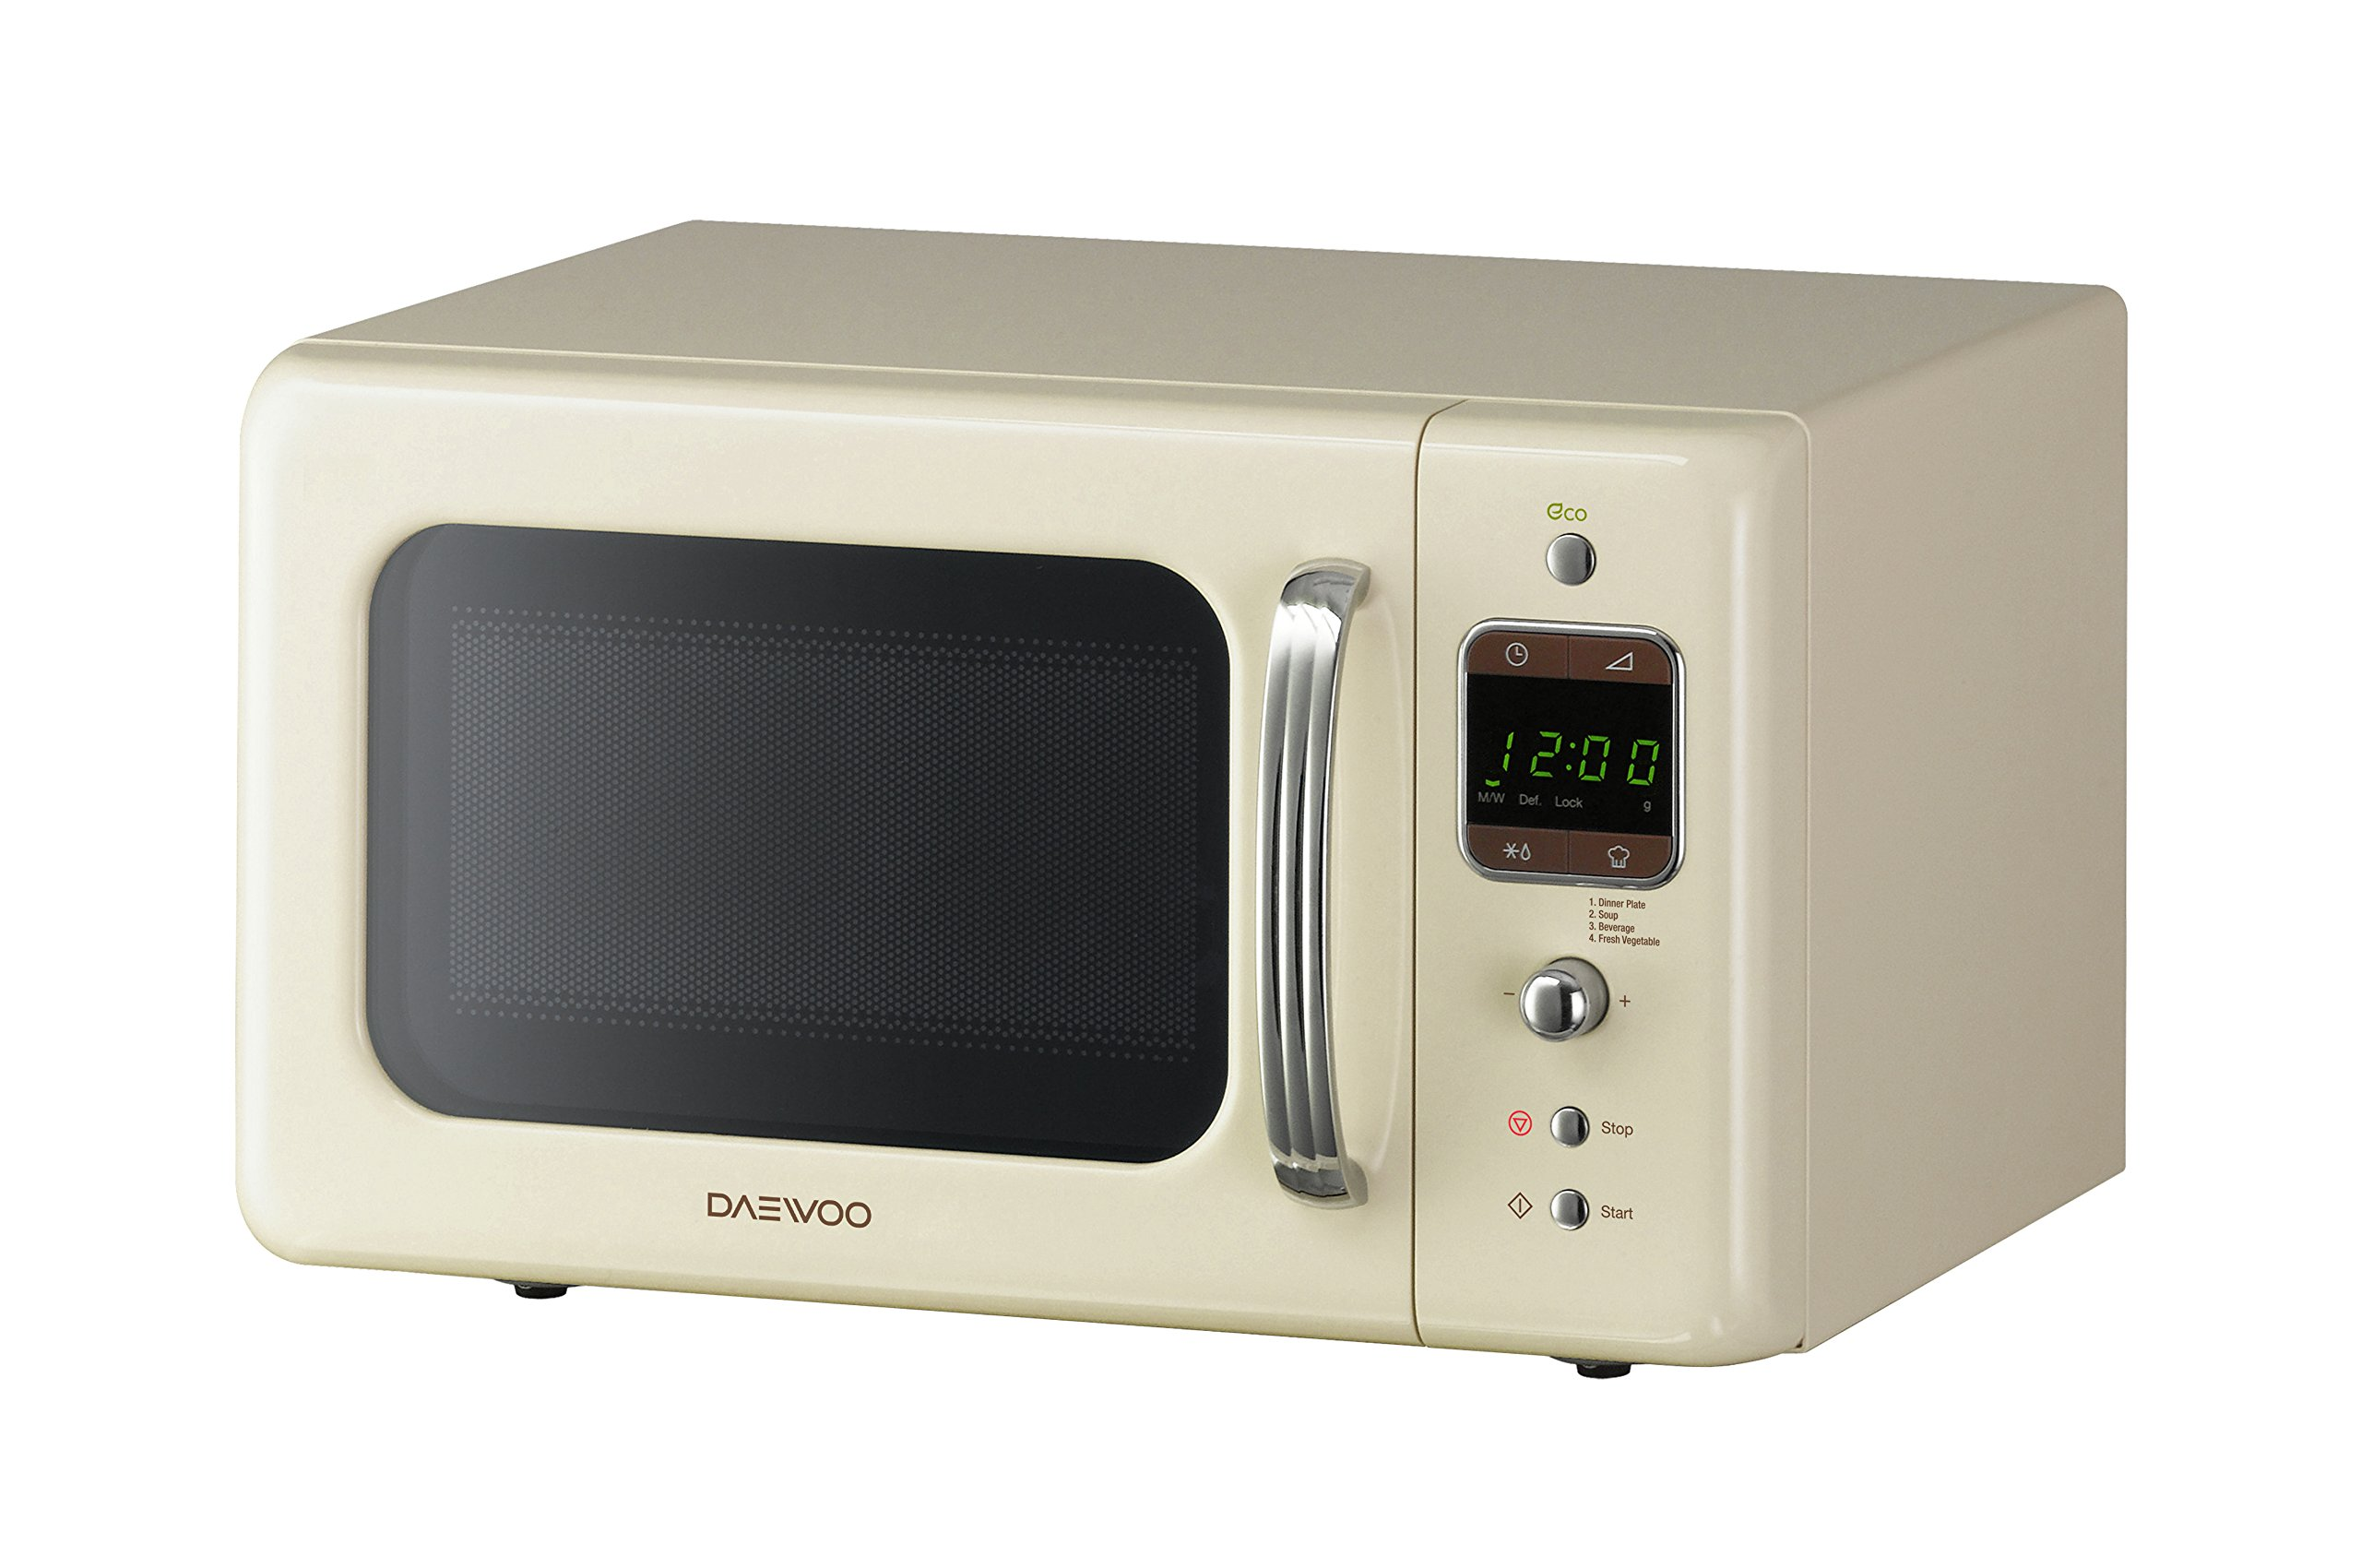 daewoo kor7lbkc retro style microwave oven 20 l 800 w cream new ebay. Black Bedroom Furniture Sets. Home Design Ideas